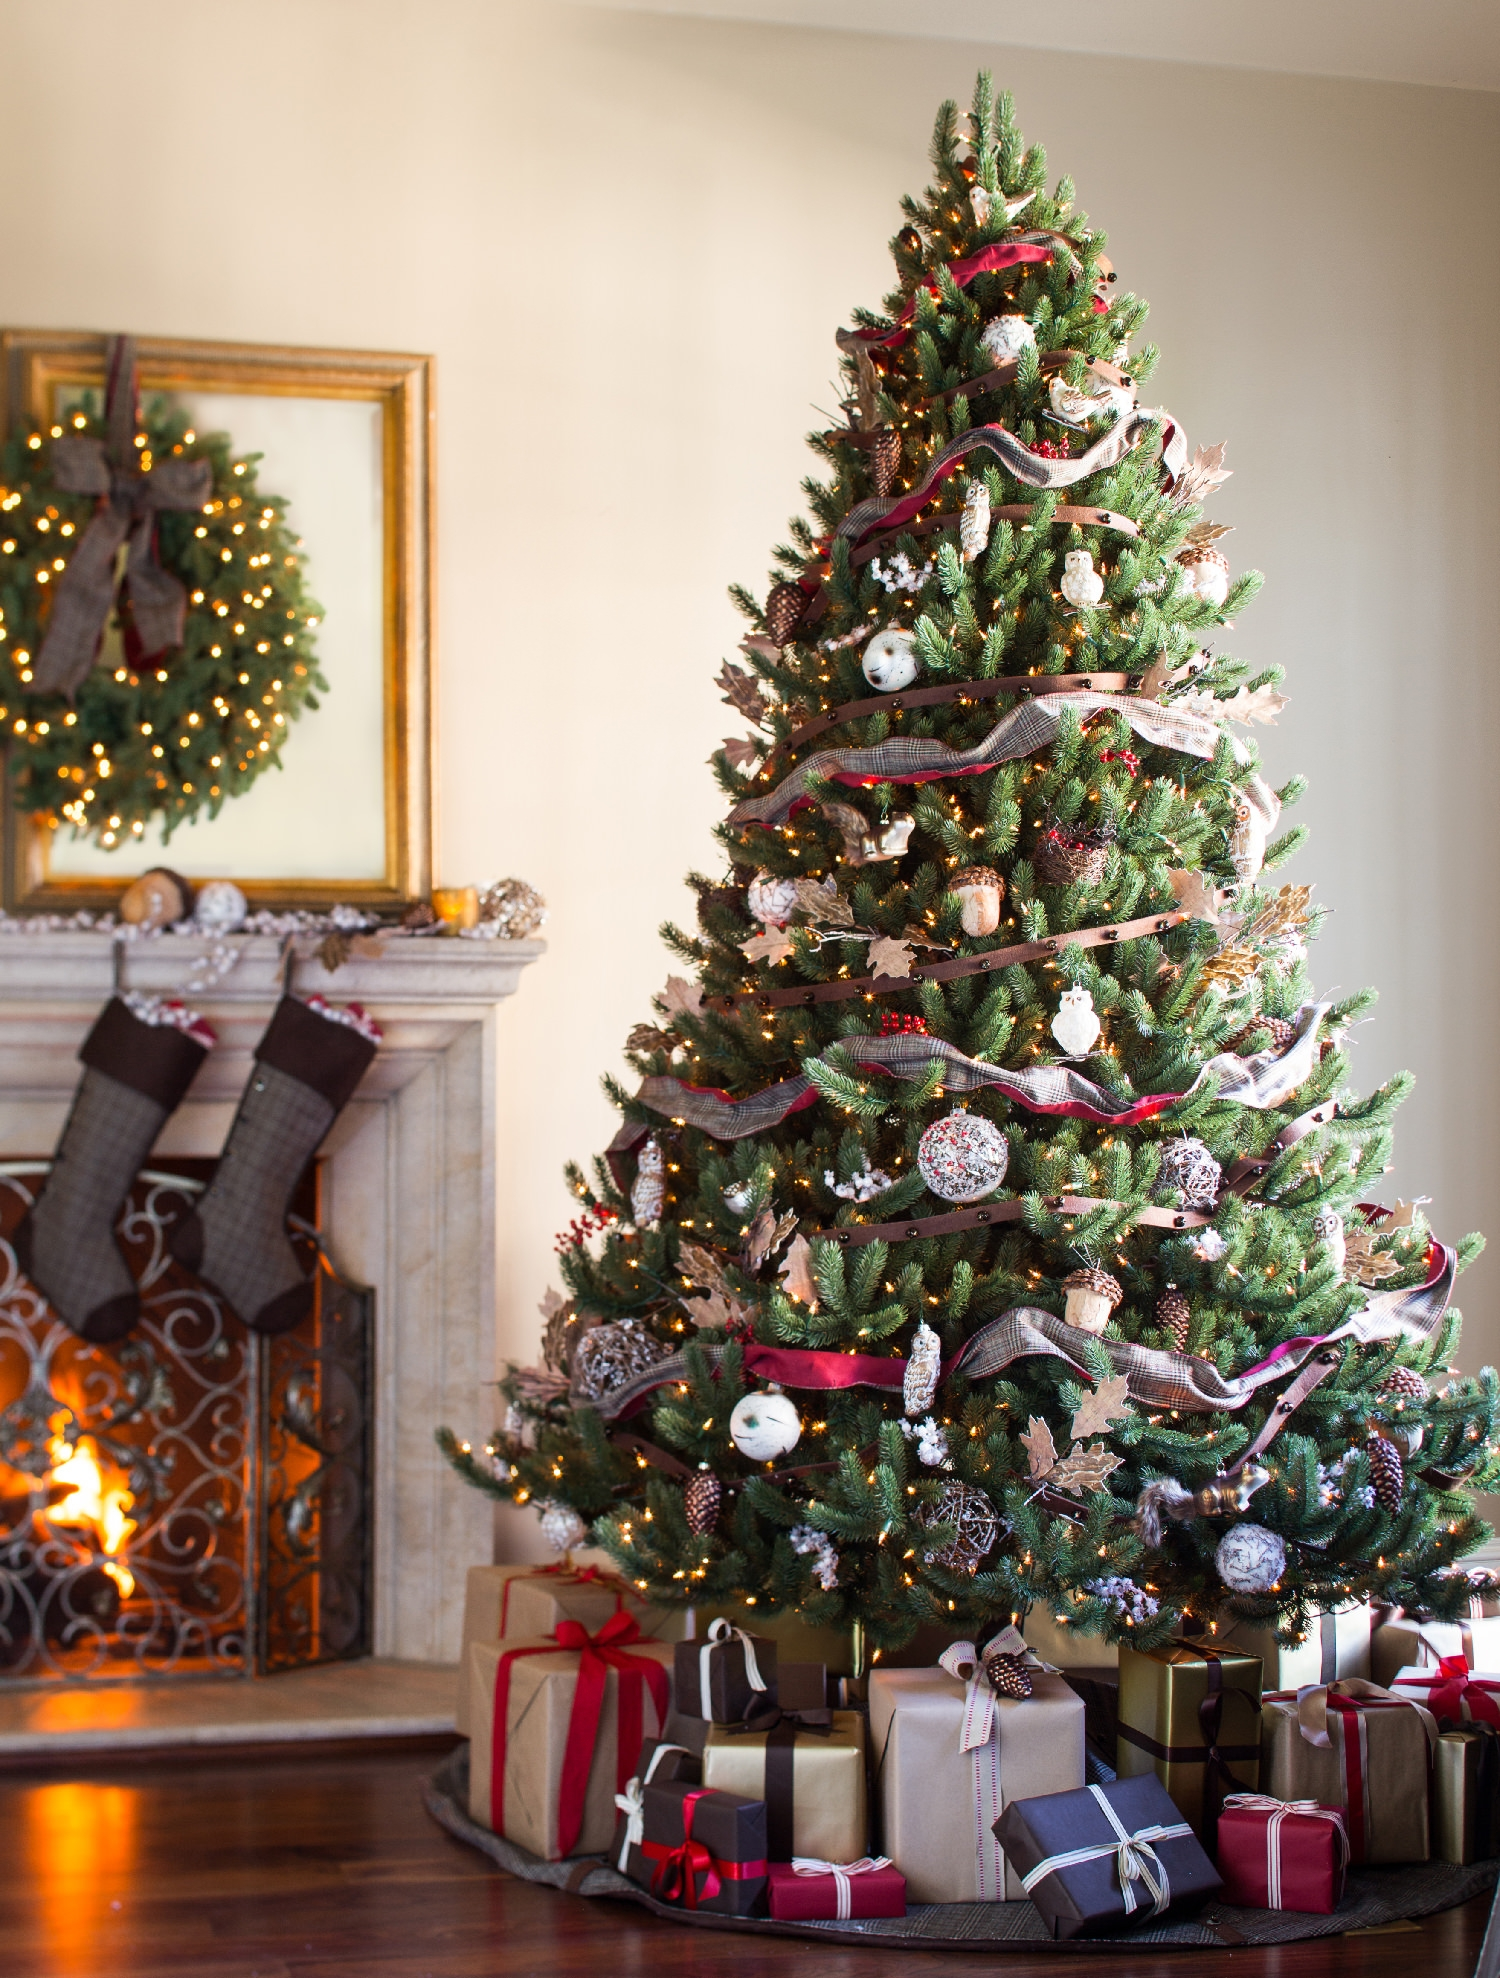 Top 5 Most Realistic Christmas Trees | Balsam Hill ...